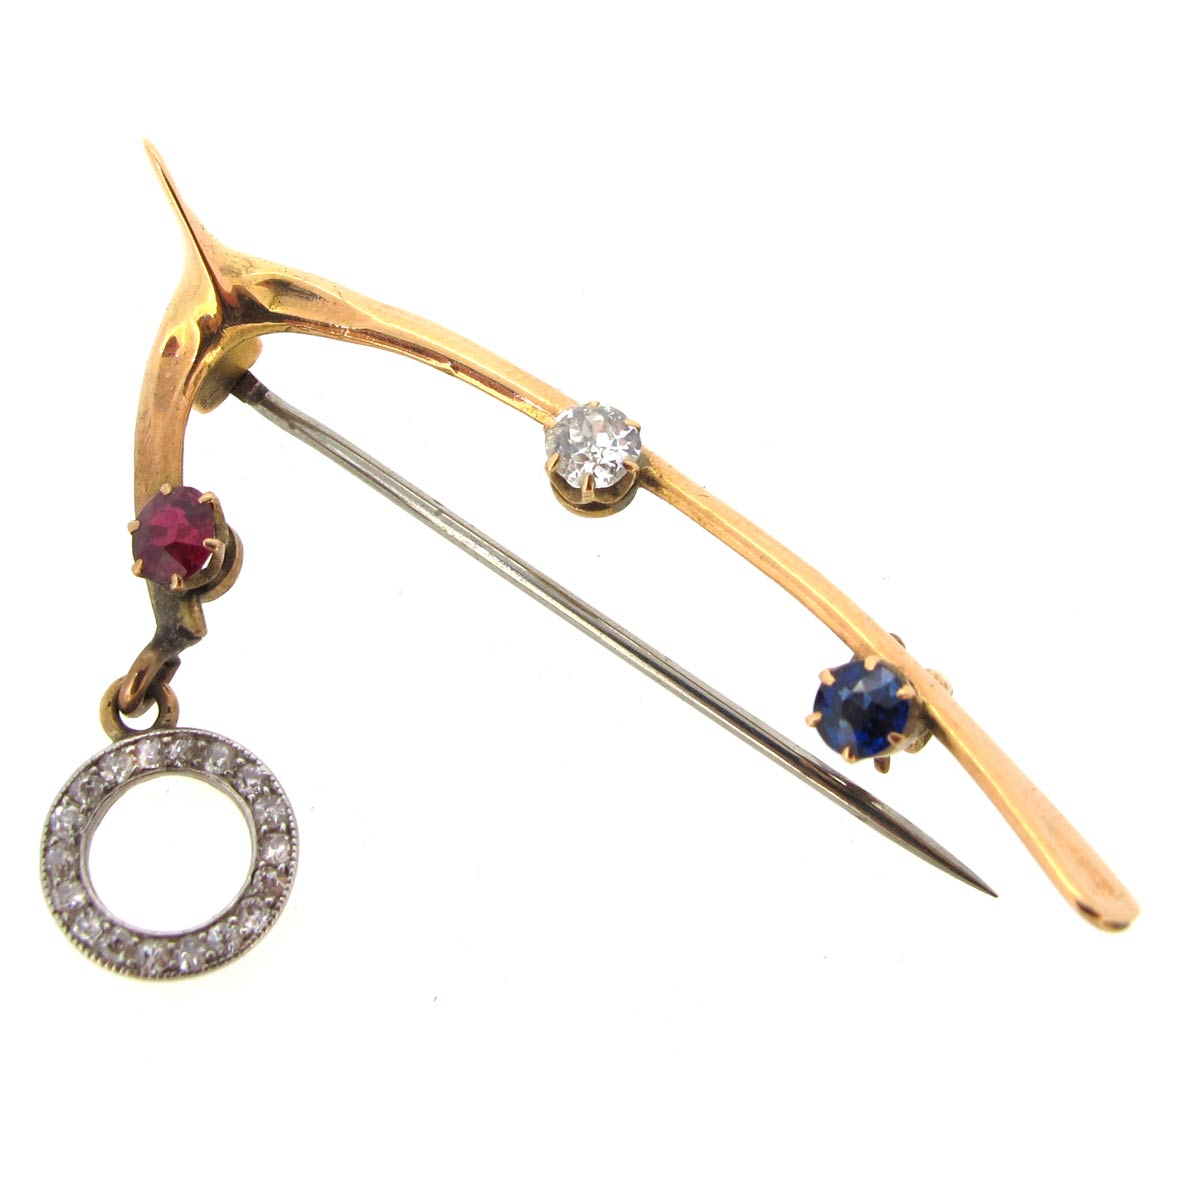 Gold & Gem Wishbone Brooch